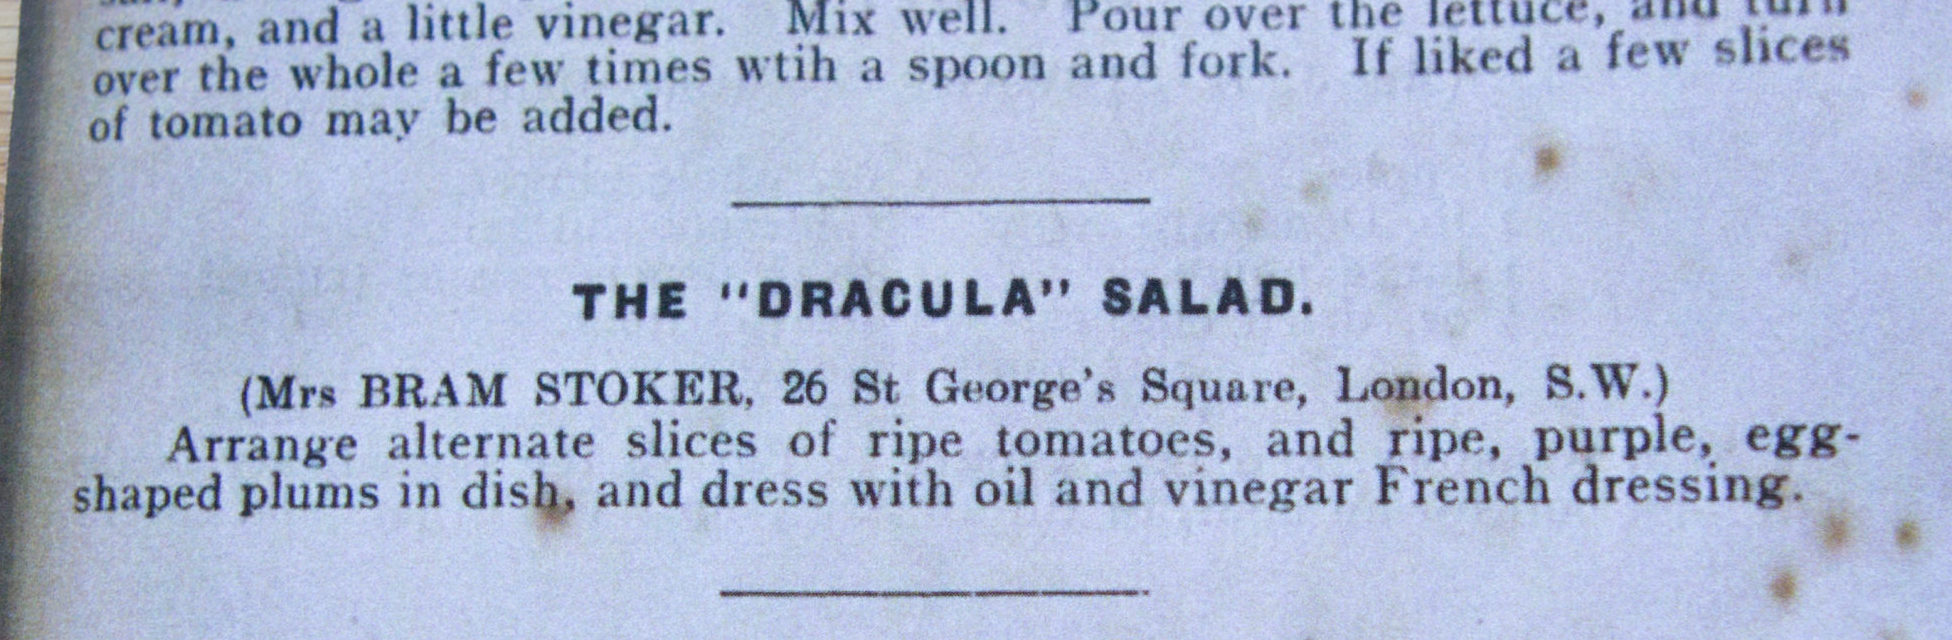 The wife of Bram Stoker created a special Dracula Salad. Pic: Frigg Photography.